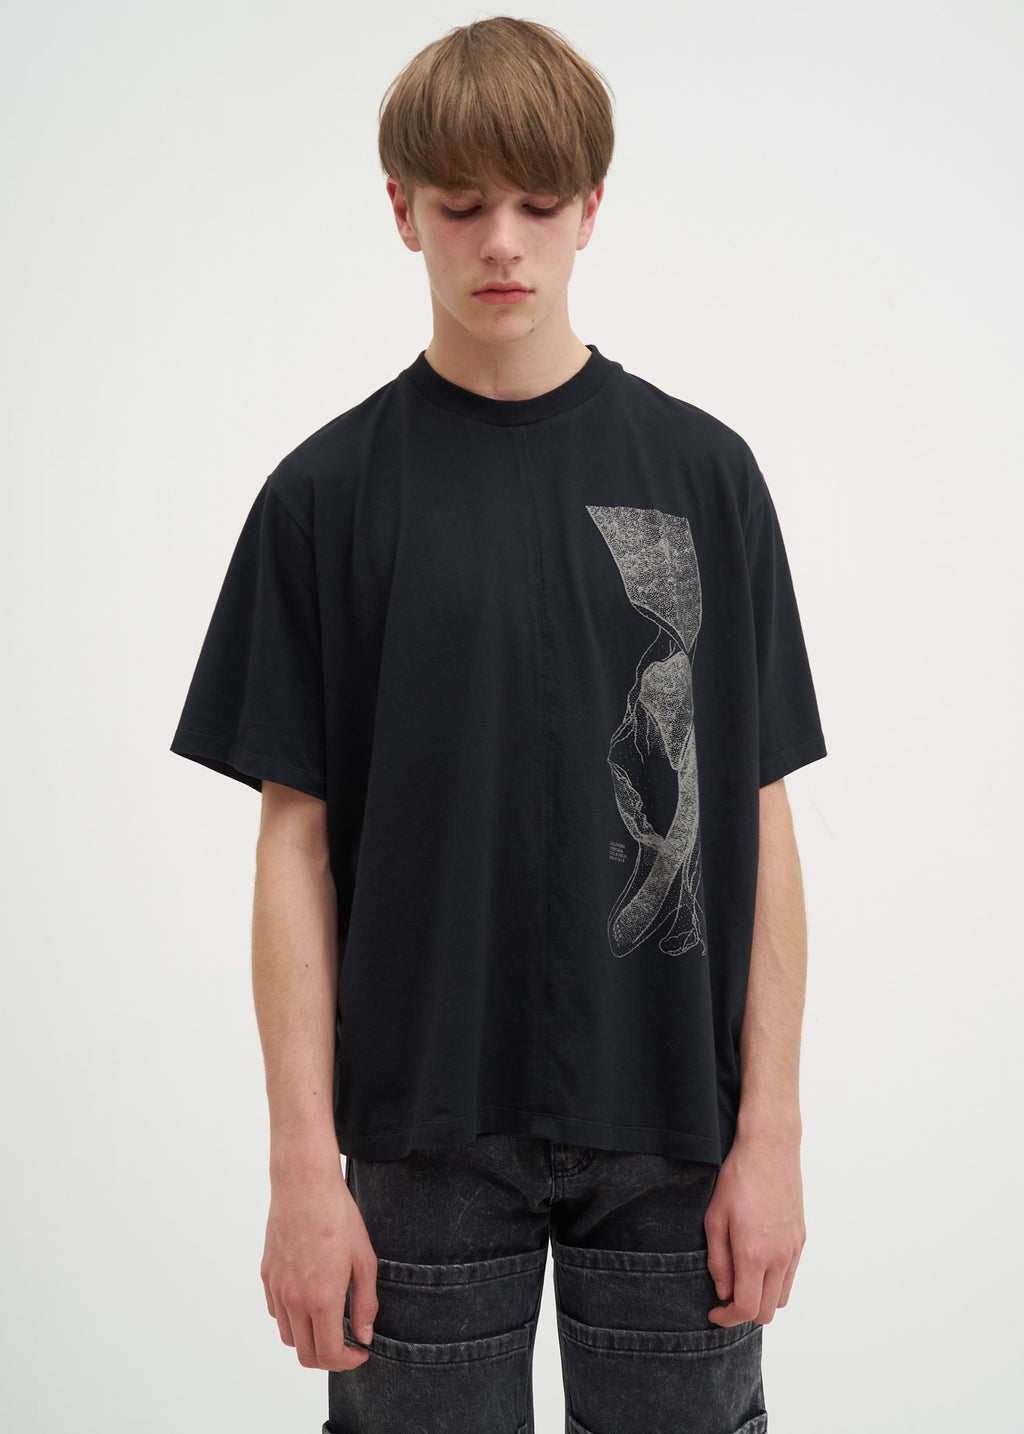 Black Calliphoria T-Shirt